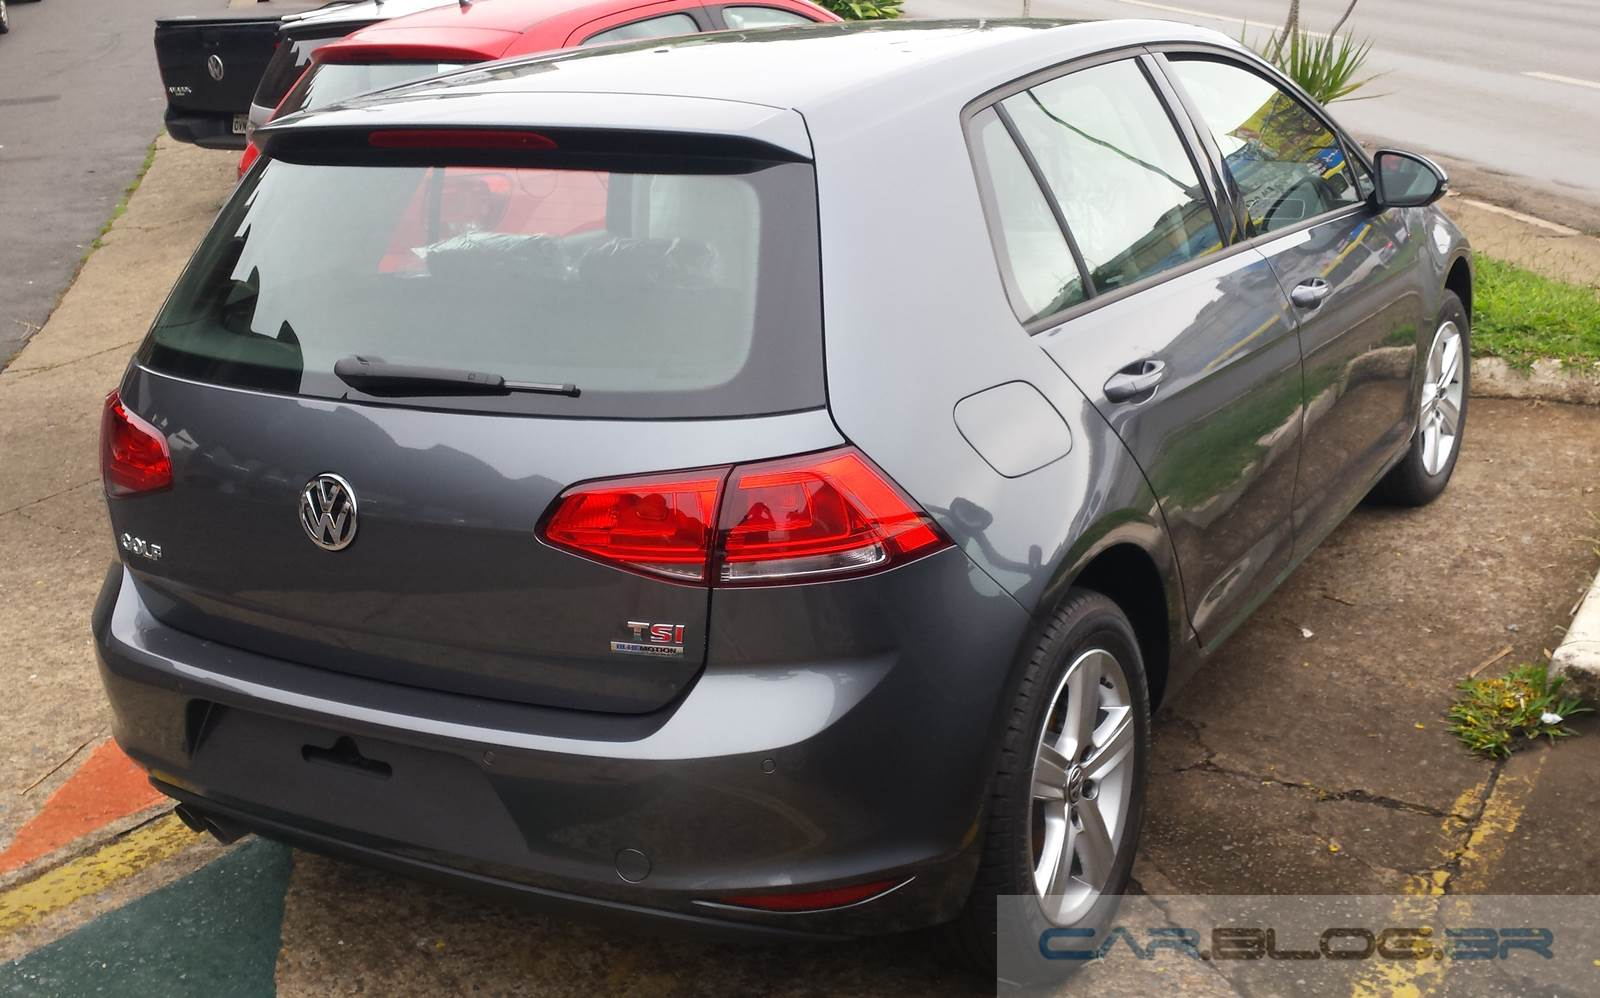 vw golf 2015 autom tico comfortline pre o r 78 5 mil car blog br. Black Bedroom Furniture Sets. Home Design Ideas